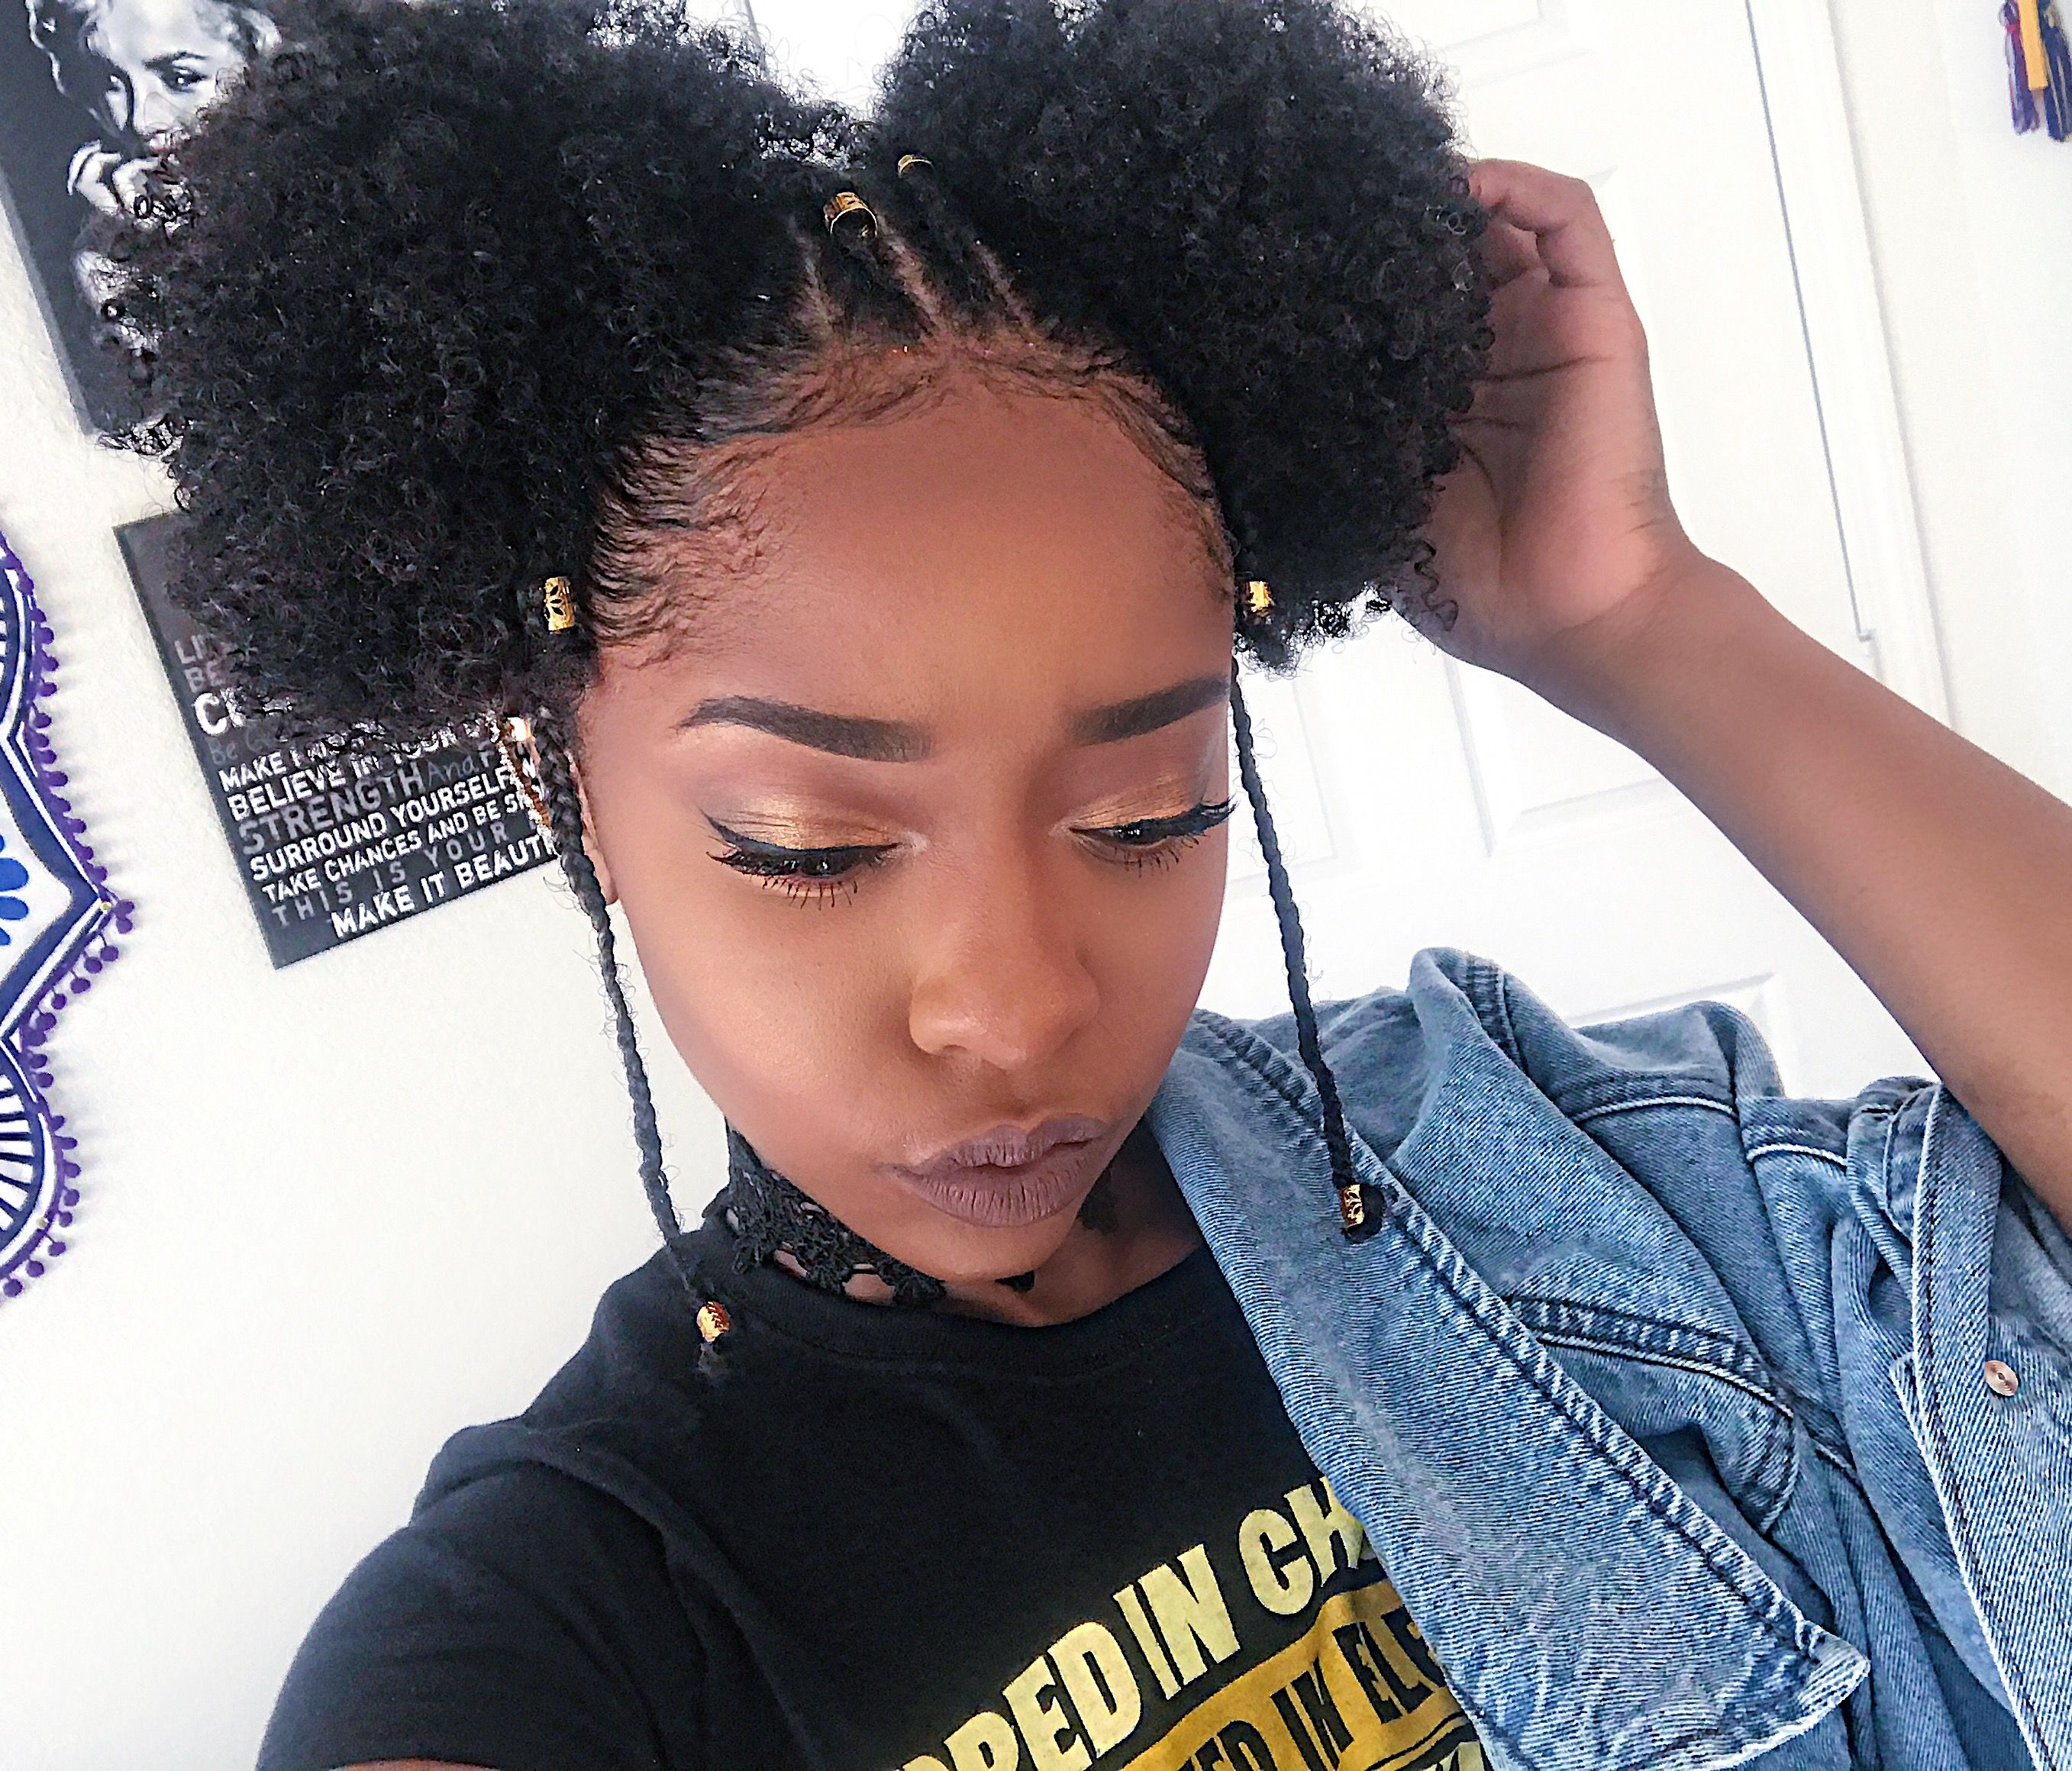 Fulani Tribe Inspired Hairstyle Naturalhair 3c 4a Youtuber Leslielatrice Ponypuffs Two Curly Hair Styles Curly Hair Styles Naturally Natural Hair Styles